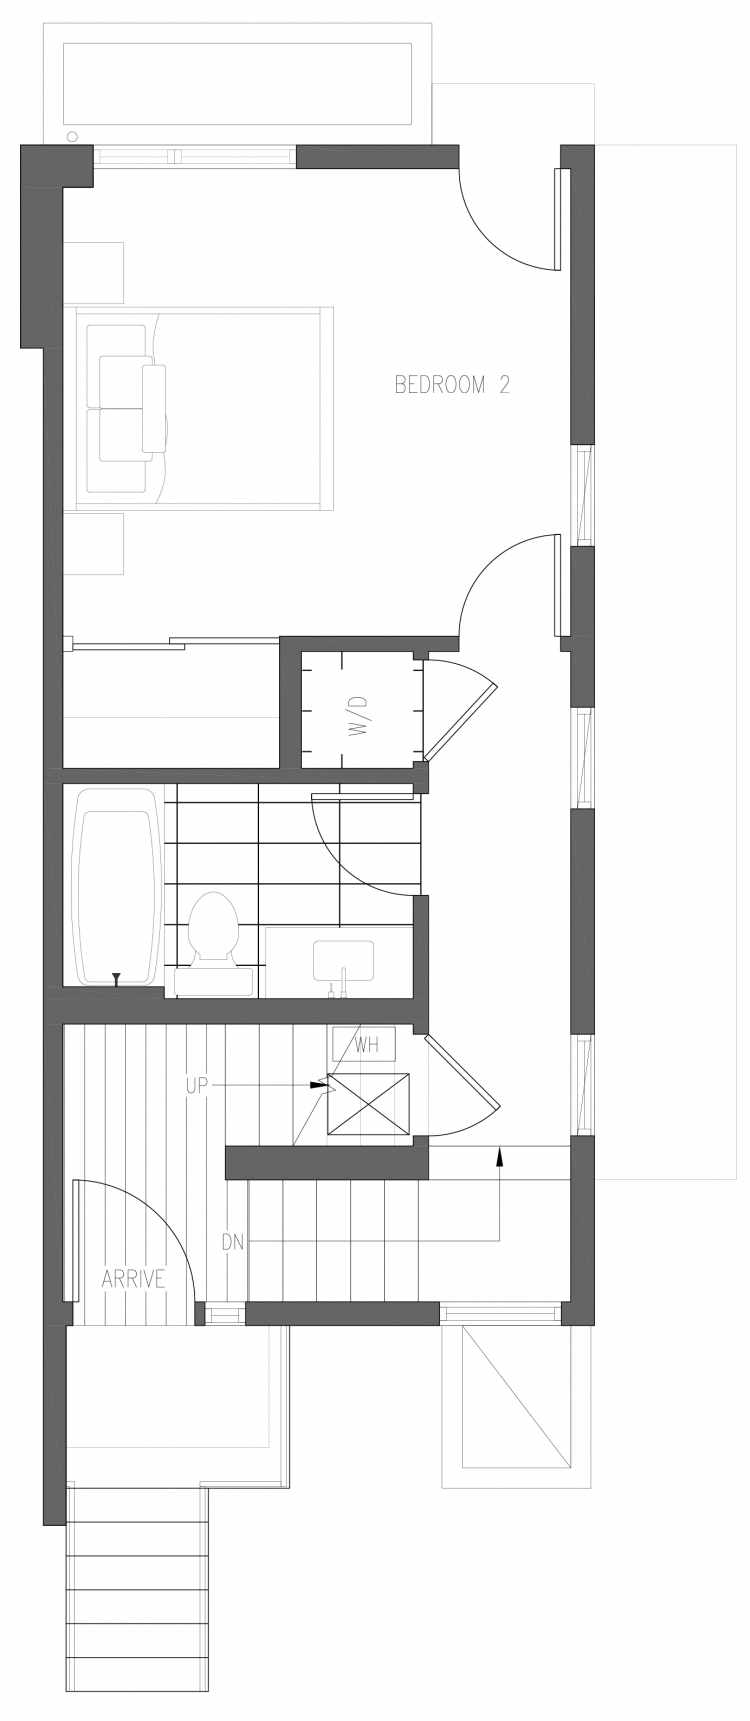 First Floor Plan of 6421 14th Ave NW, One of the Oleana Townhomes in Ballard by Isola Homes